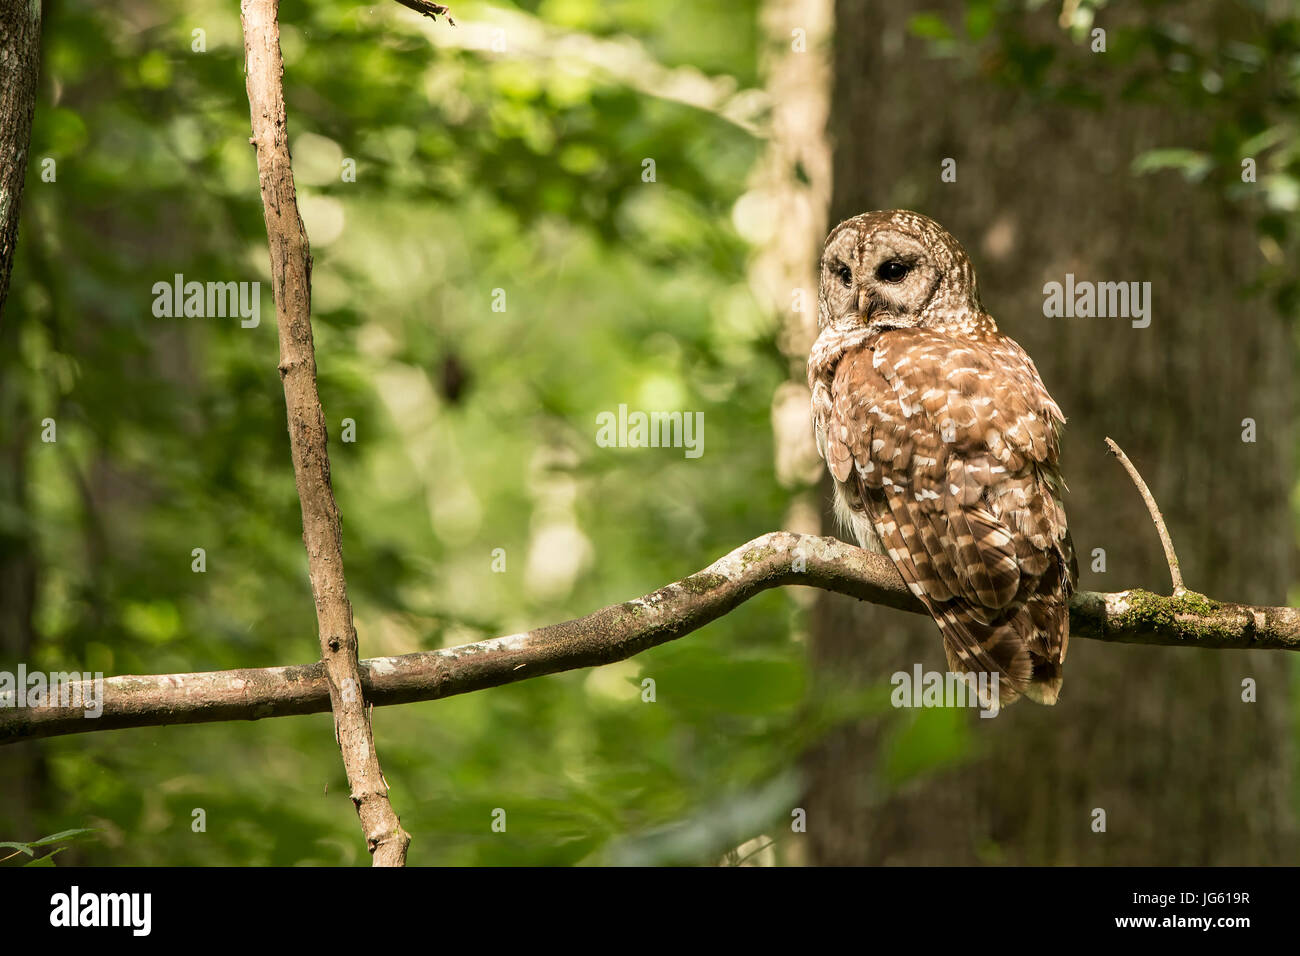 A Barred Owl sits on a branch in Congaree National Park, South Carolina. Stock Photo